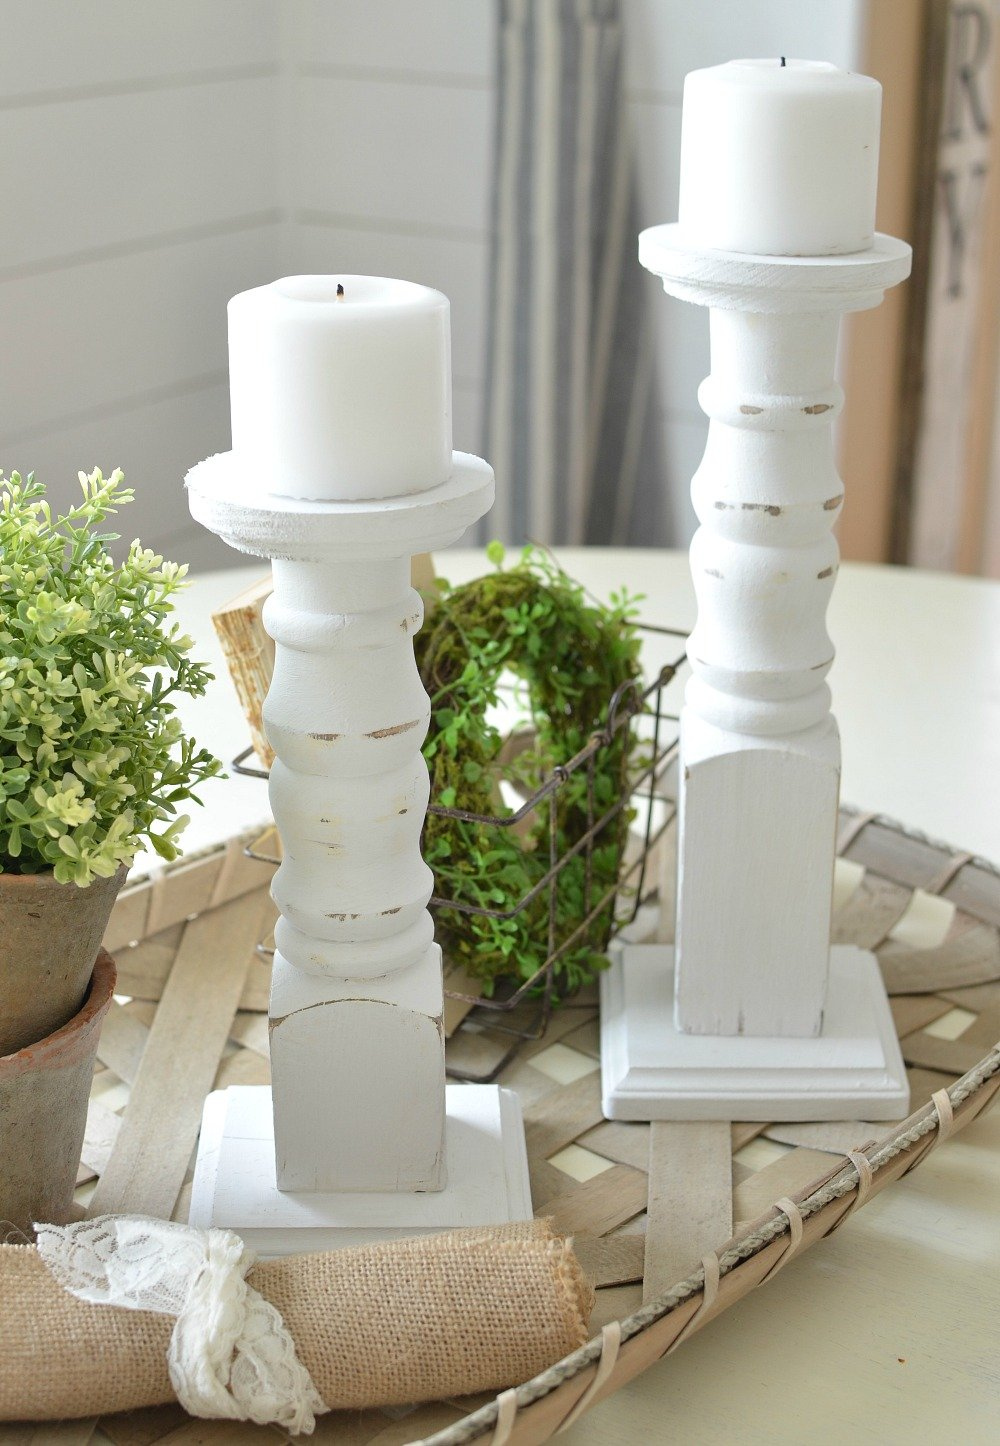 The Easiest DIY Farmhouse Candlesticks. Check out this easy tutorial to see how old spindles were used to make farmhouse style candlesticks in just a few simple steps!